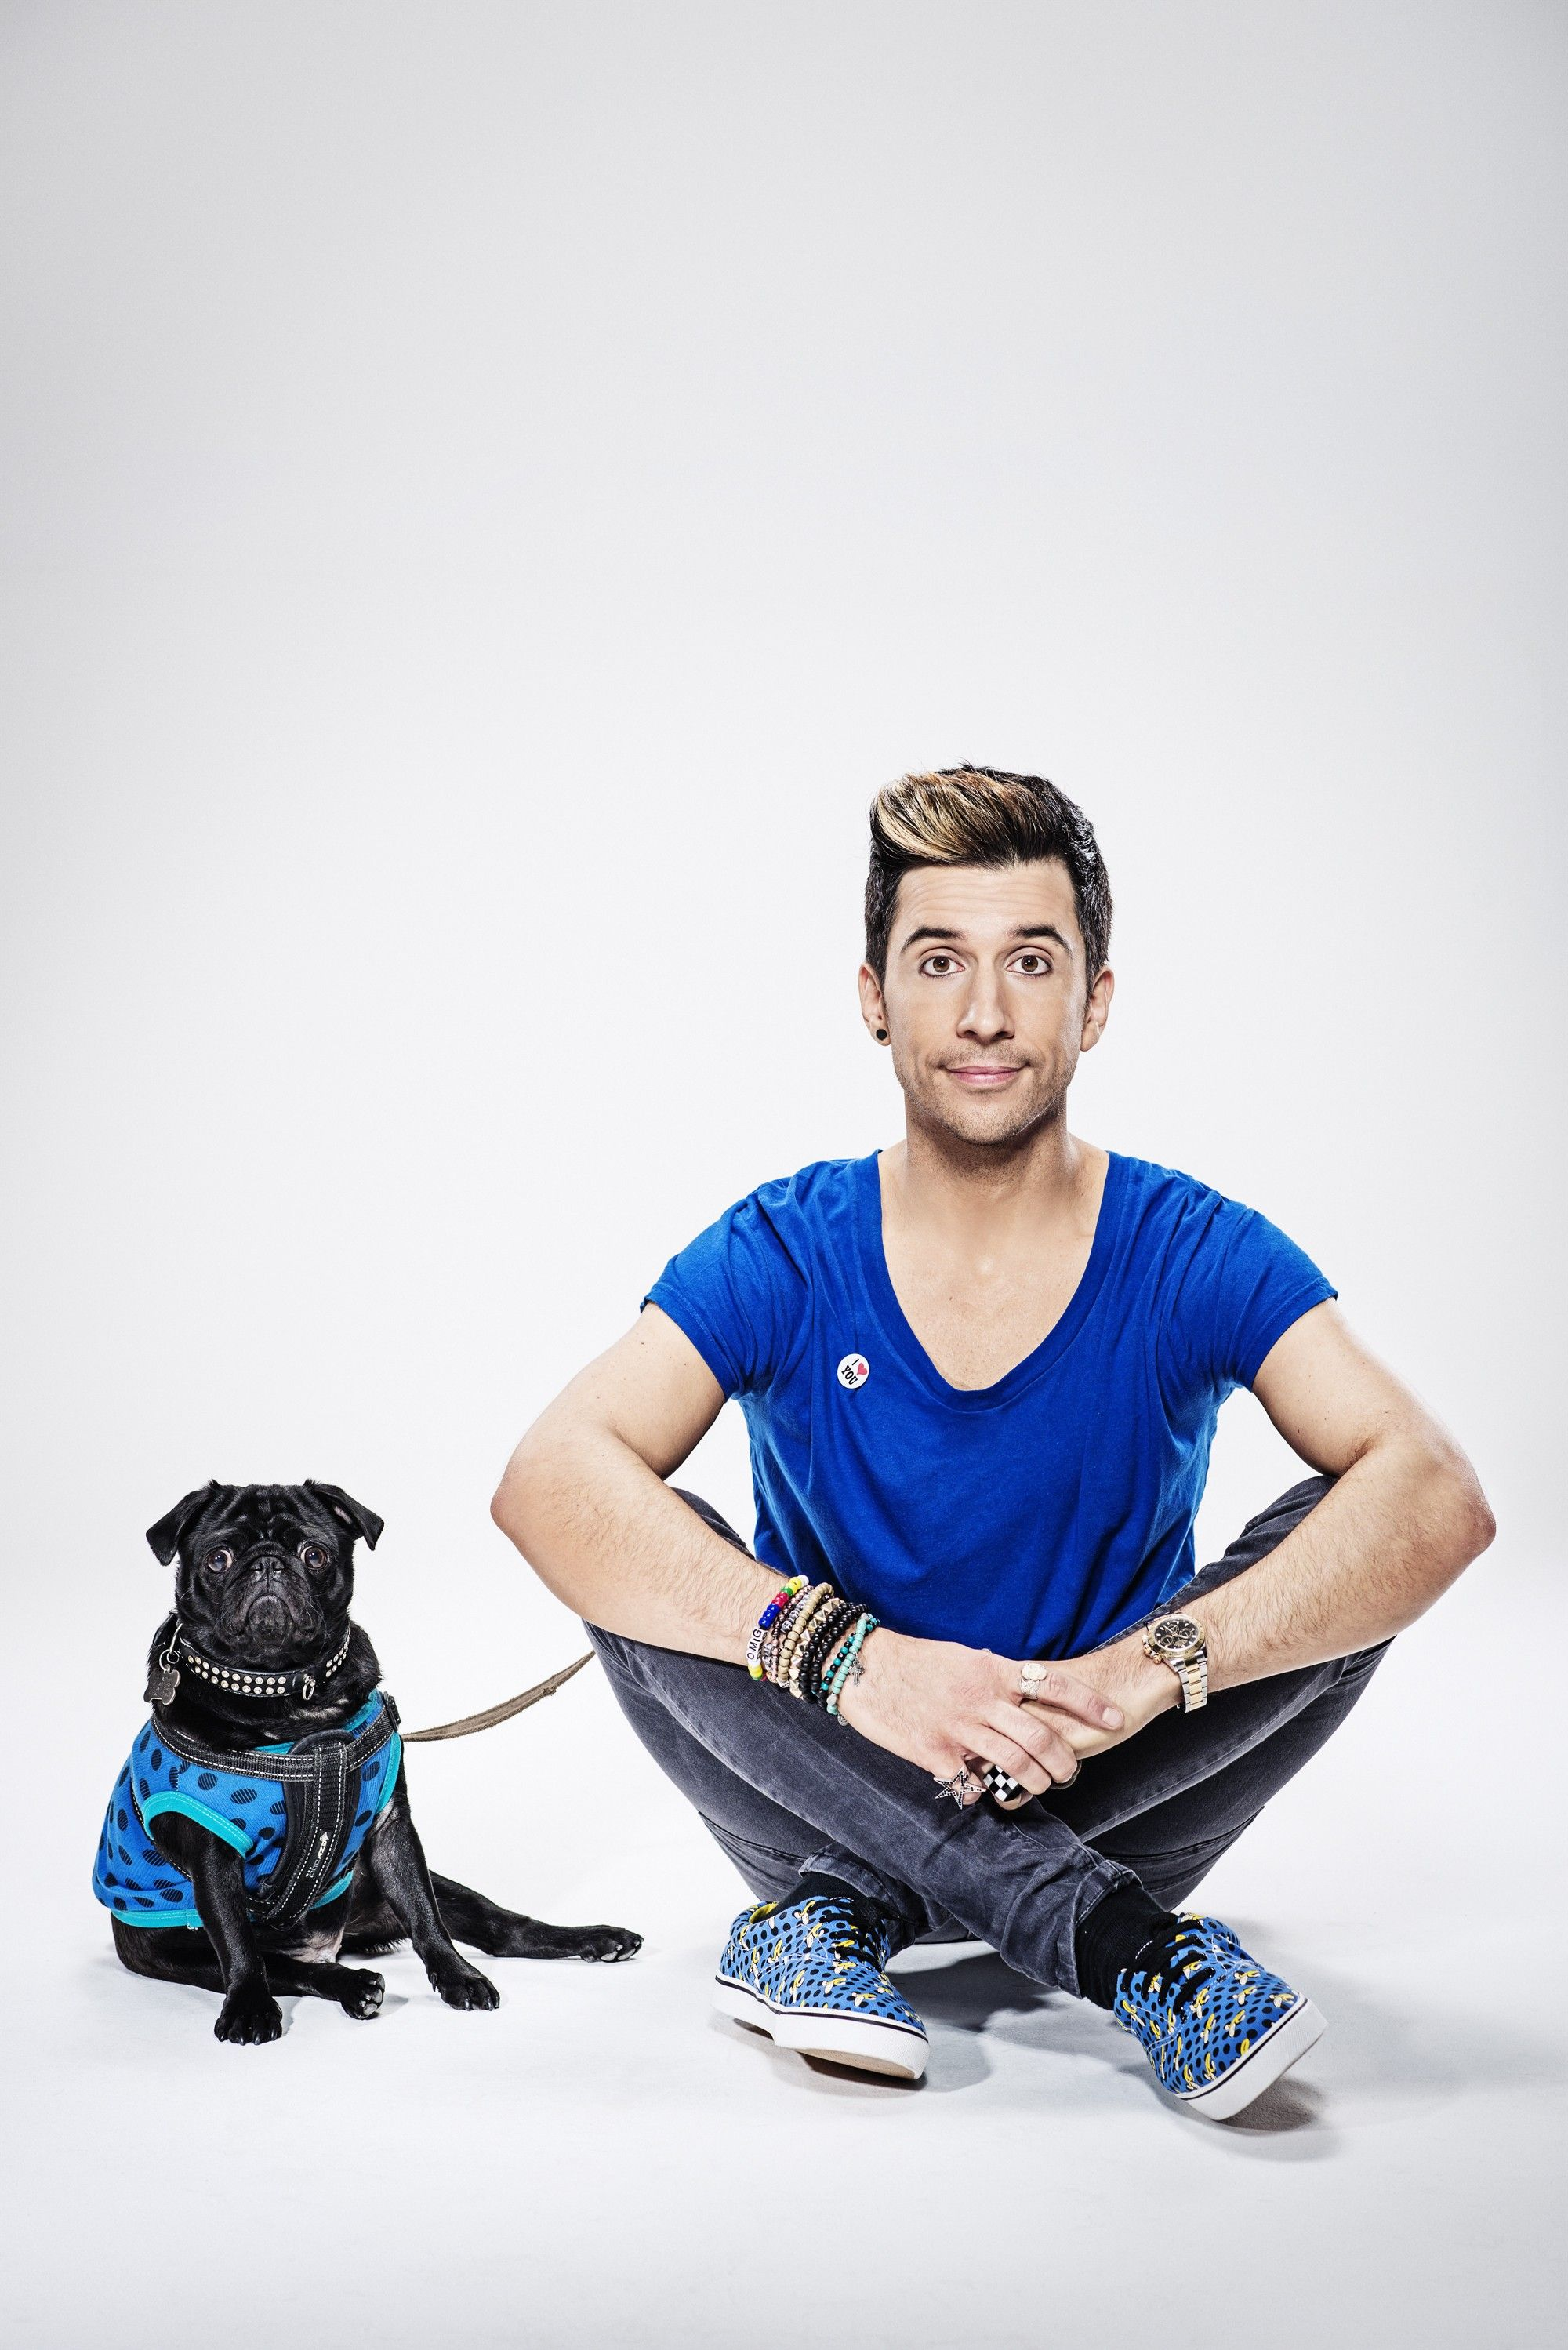 COMEDIAN RUSSELL KANE & HIS PUG CAPTAIN COLIN